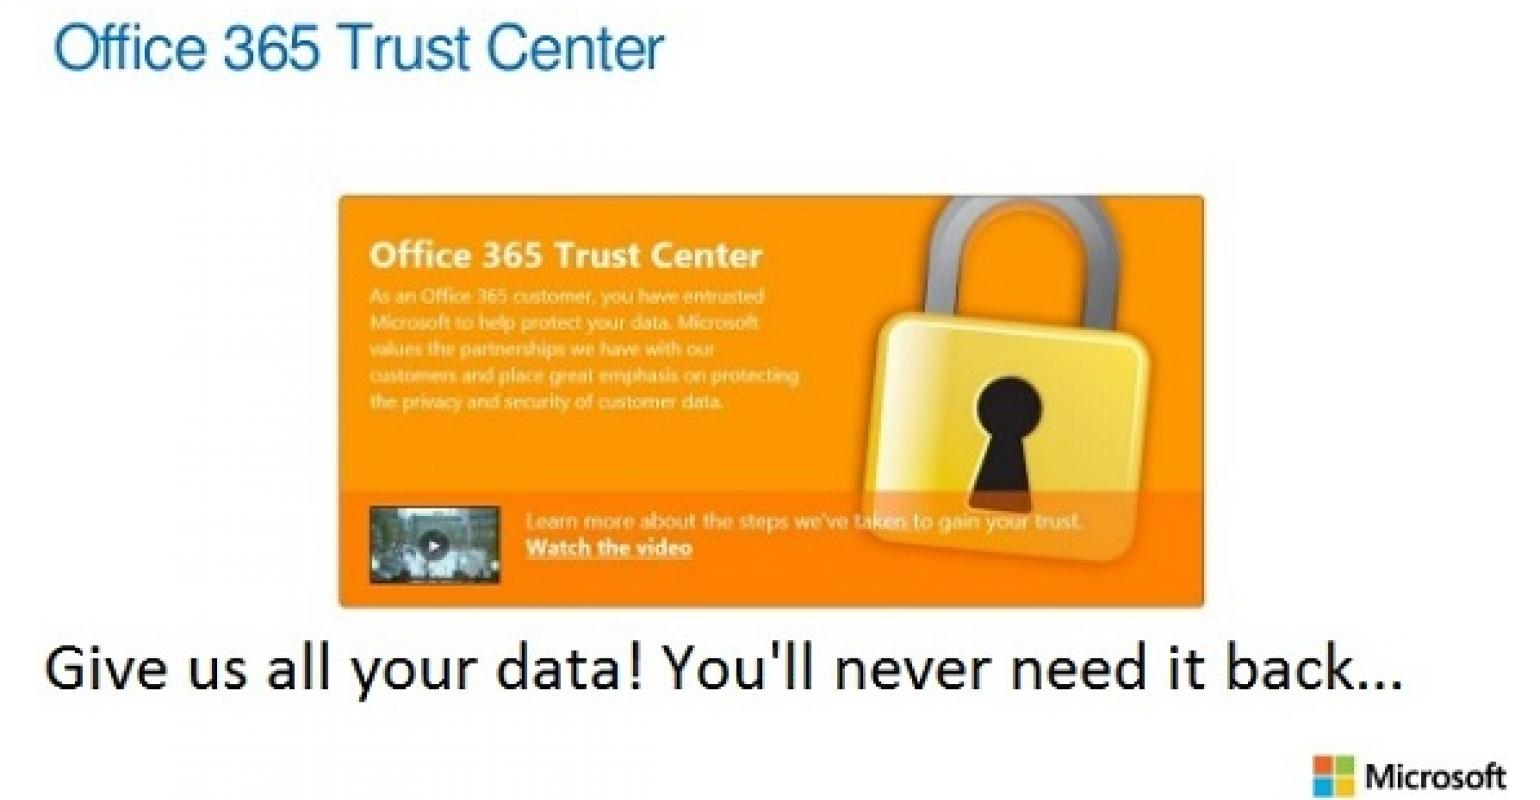 Getting data into Office 365 is easy